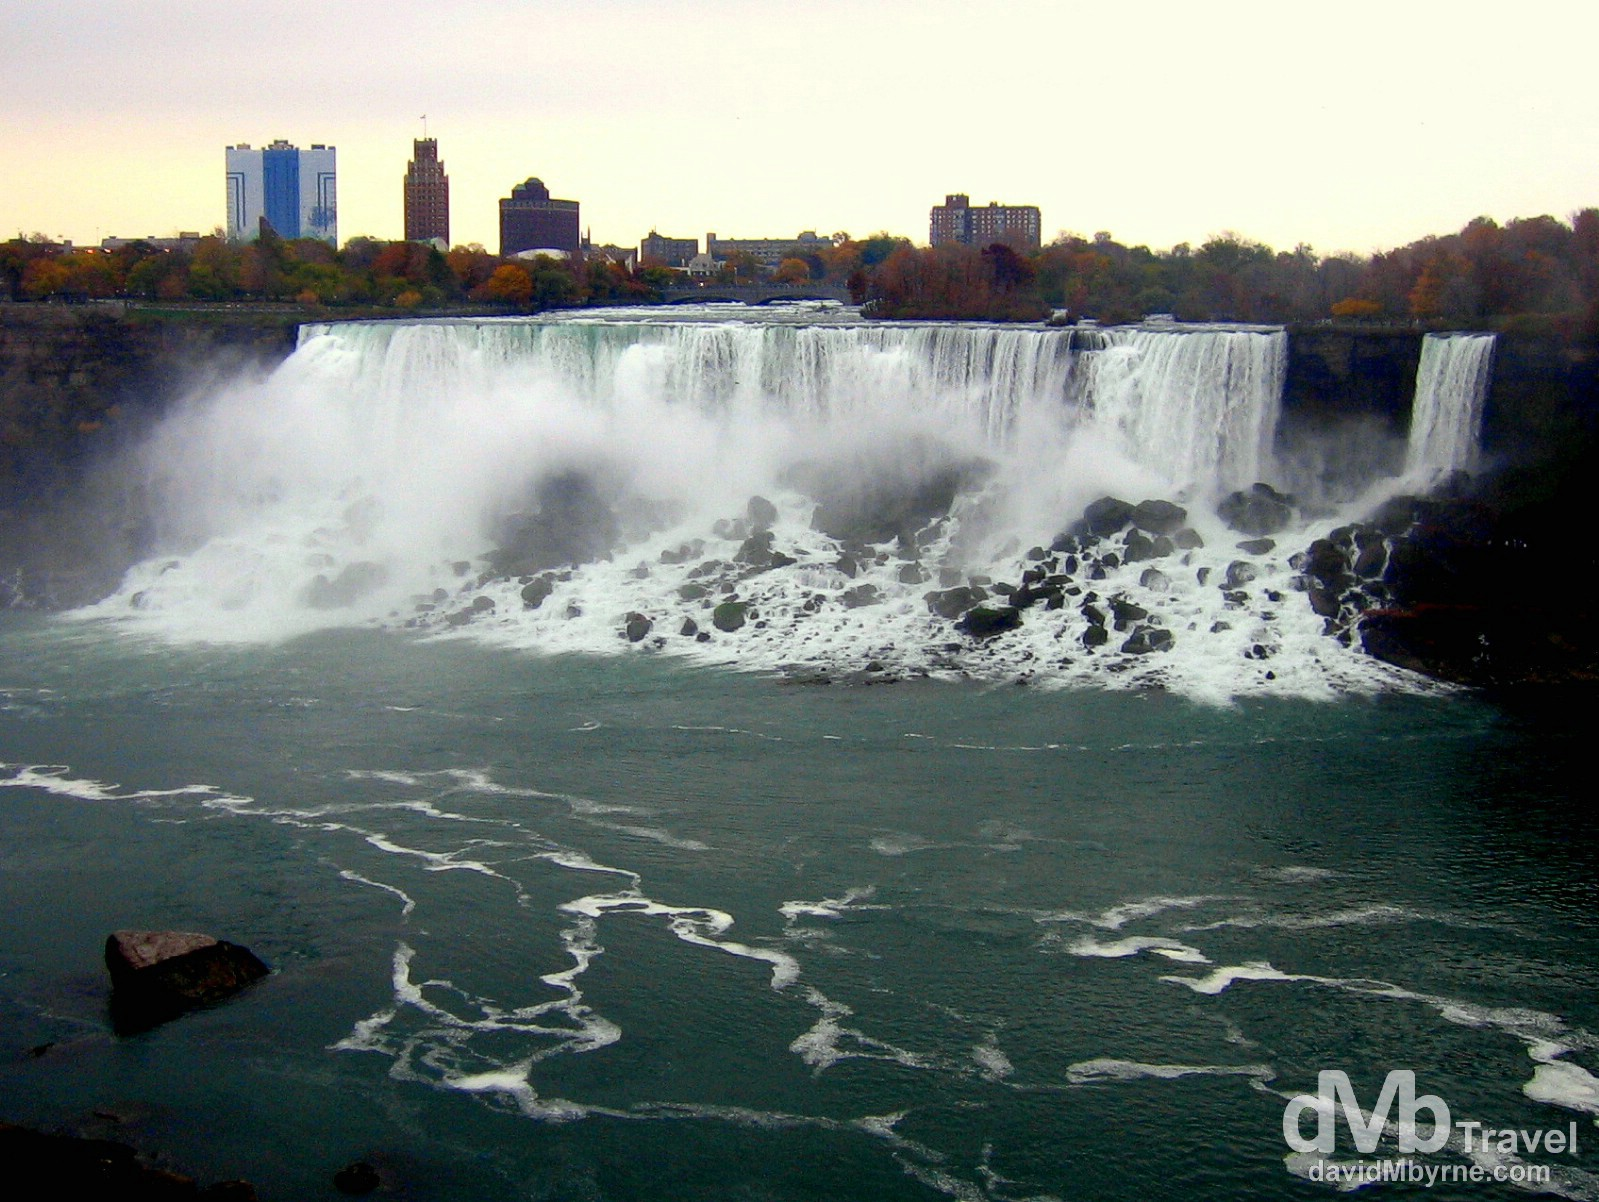 The American Falls, aka The Bridal Veil Falls, of the larger Niagara Falls as seen from Niagara Falls, Ontario, Canada. November 5th 2005.